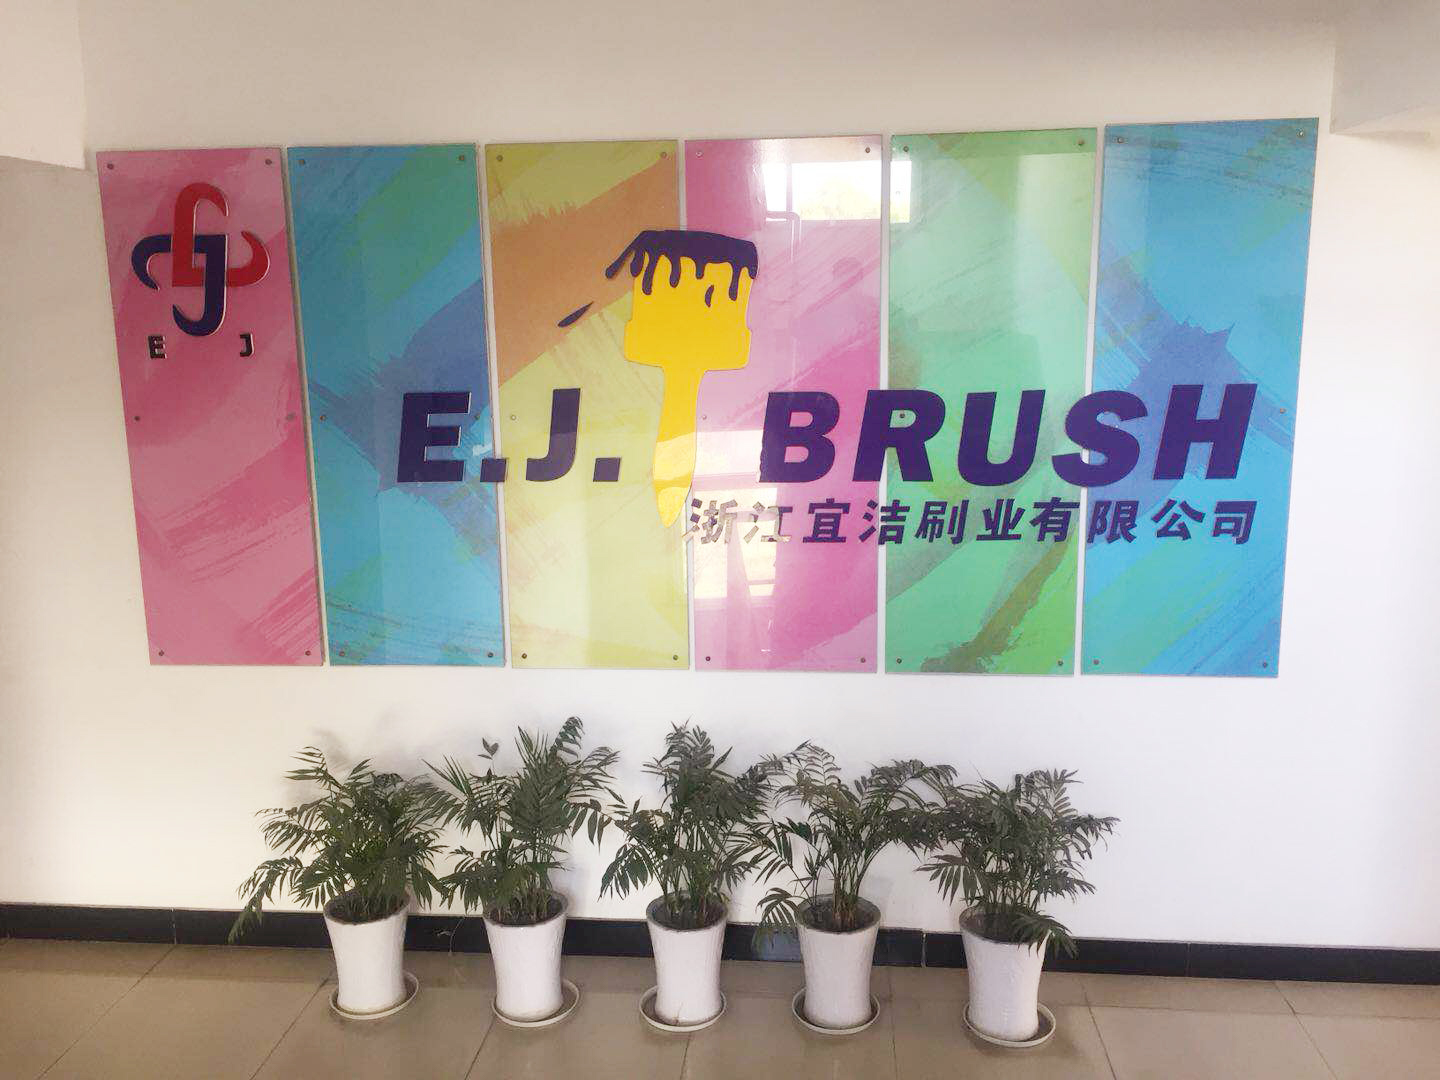 ZHEJIANG E.J.BRUSH IND CO.,LTD.was founded in 1992